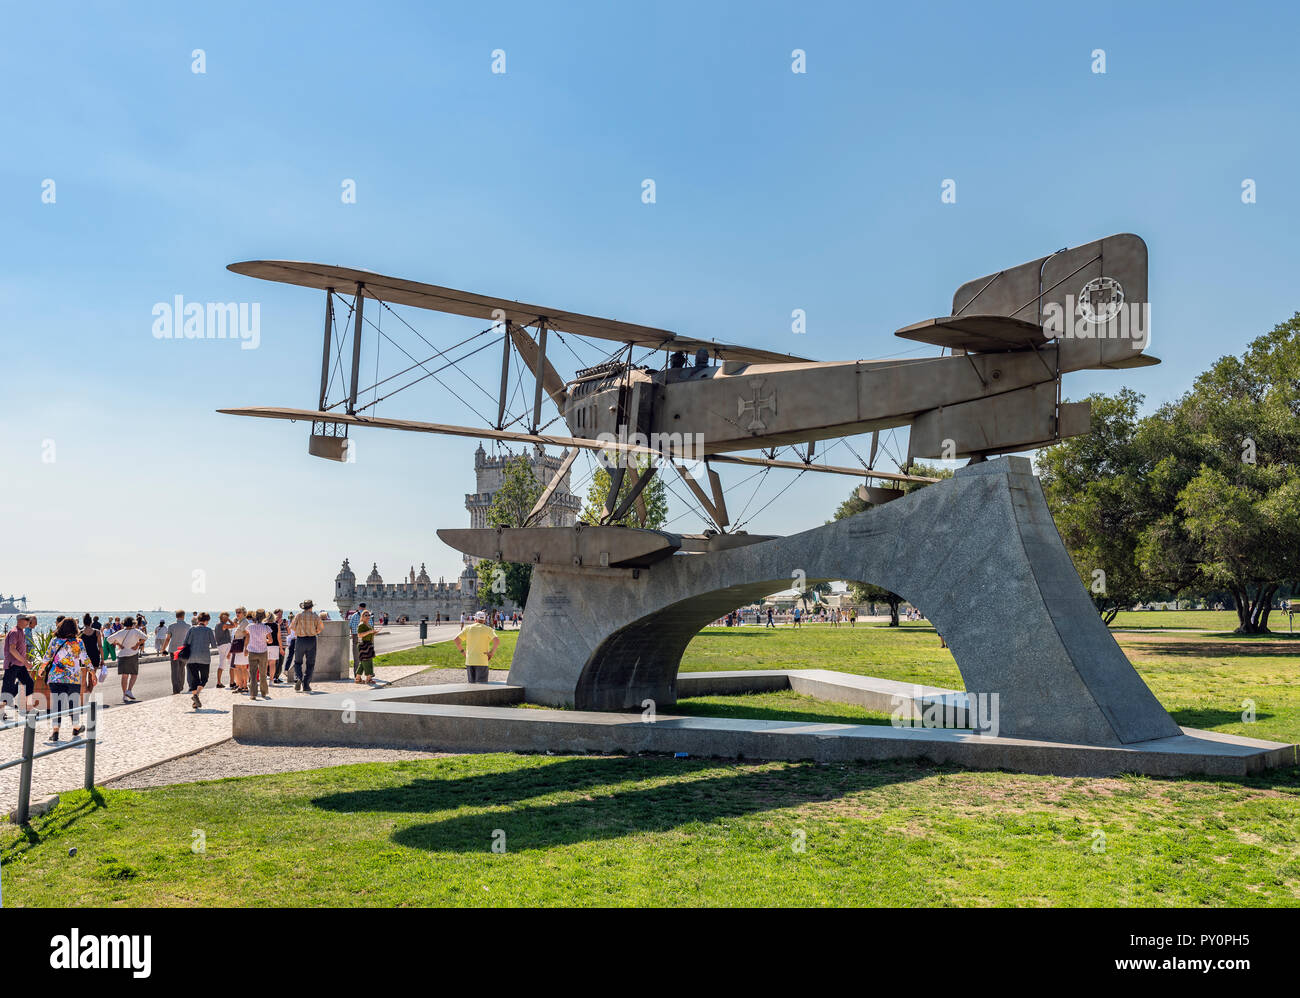 commemorative statue in rememberance of the first south atlantic crossing by Gago Coutinho and Sacadura Cabral in a Fairey III-D MkII seaplane in 1922 - Stock Image